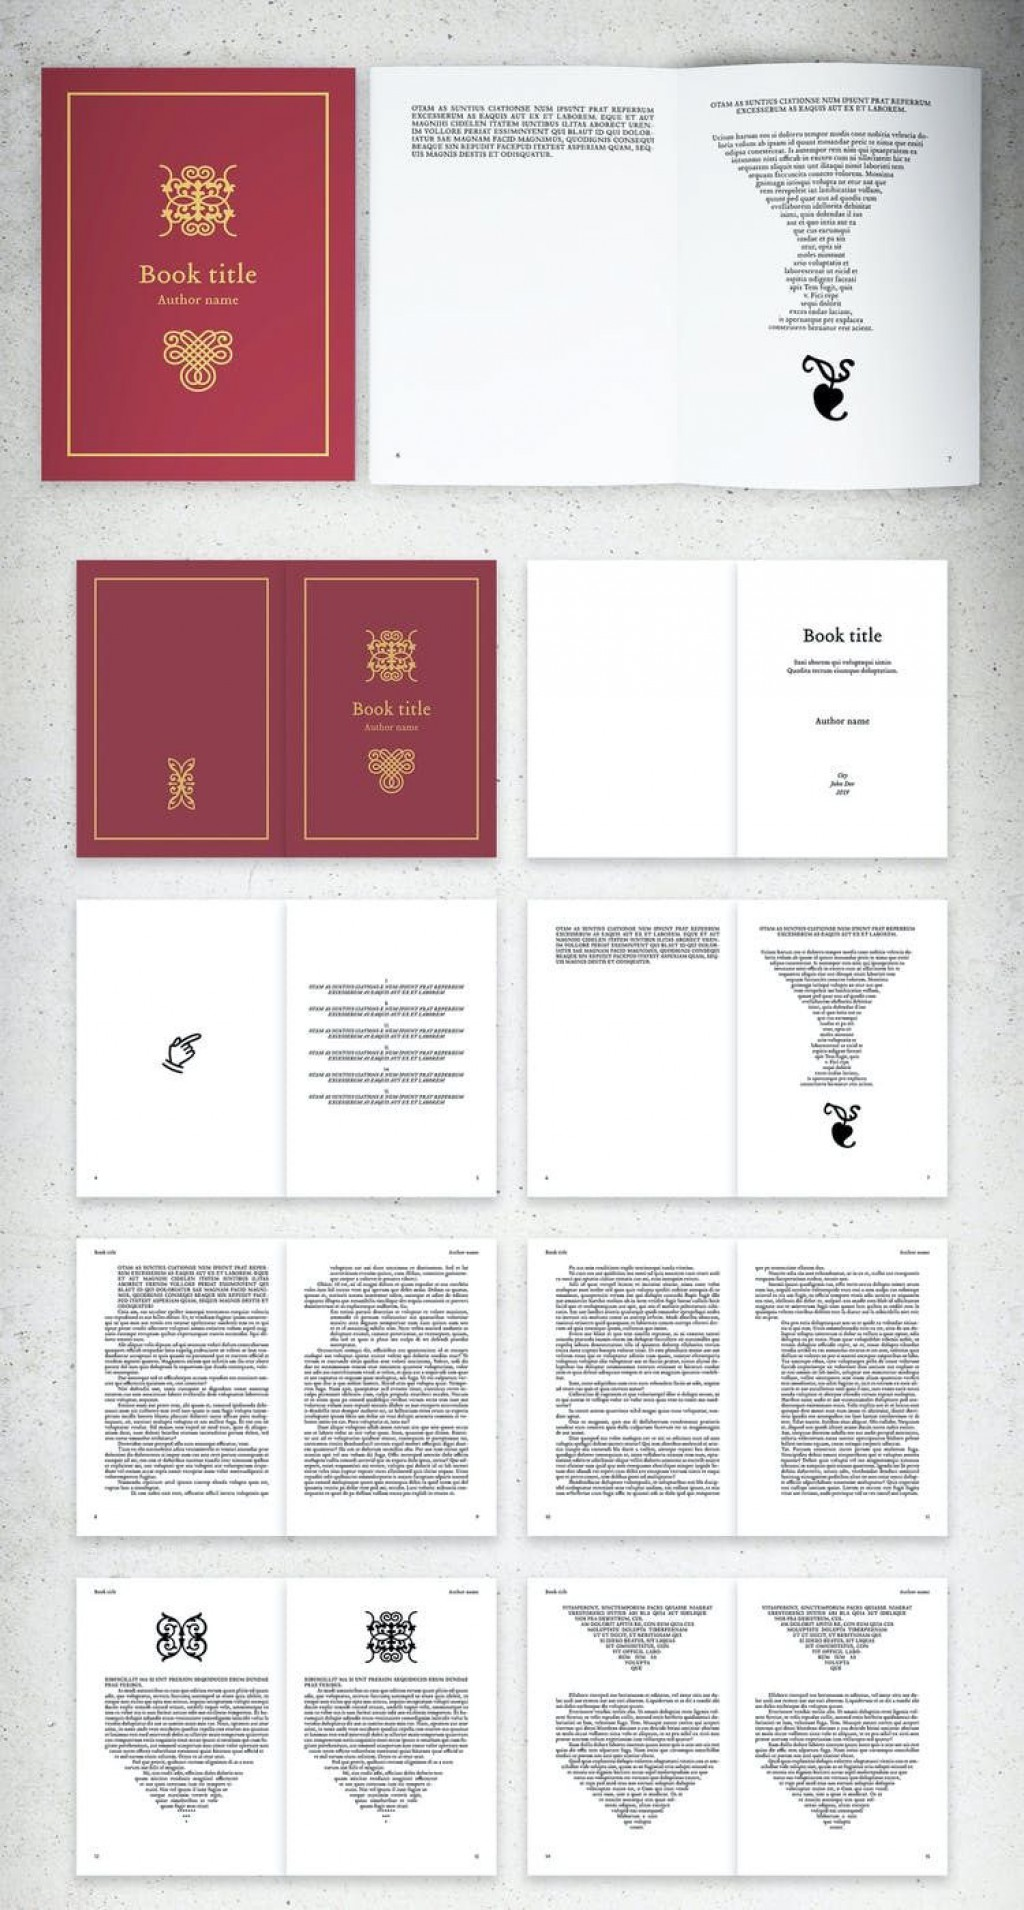 009 Outstanding Indesign Book Layout Template Inspiration  Free DownloadLarge